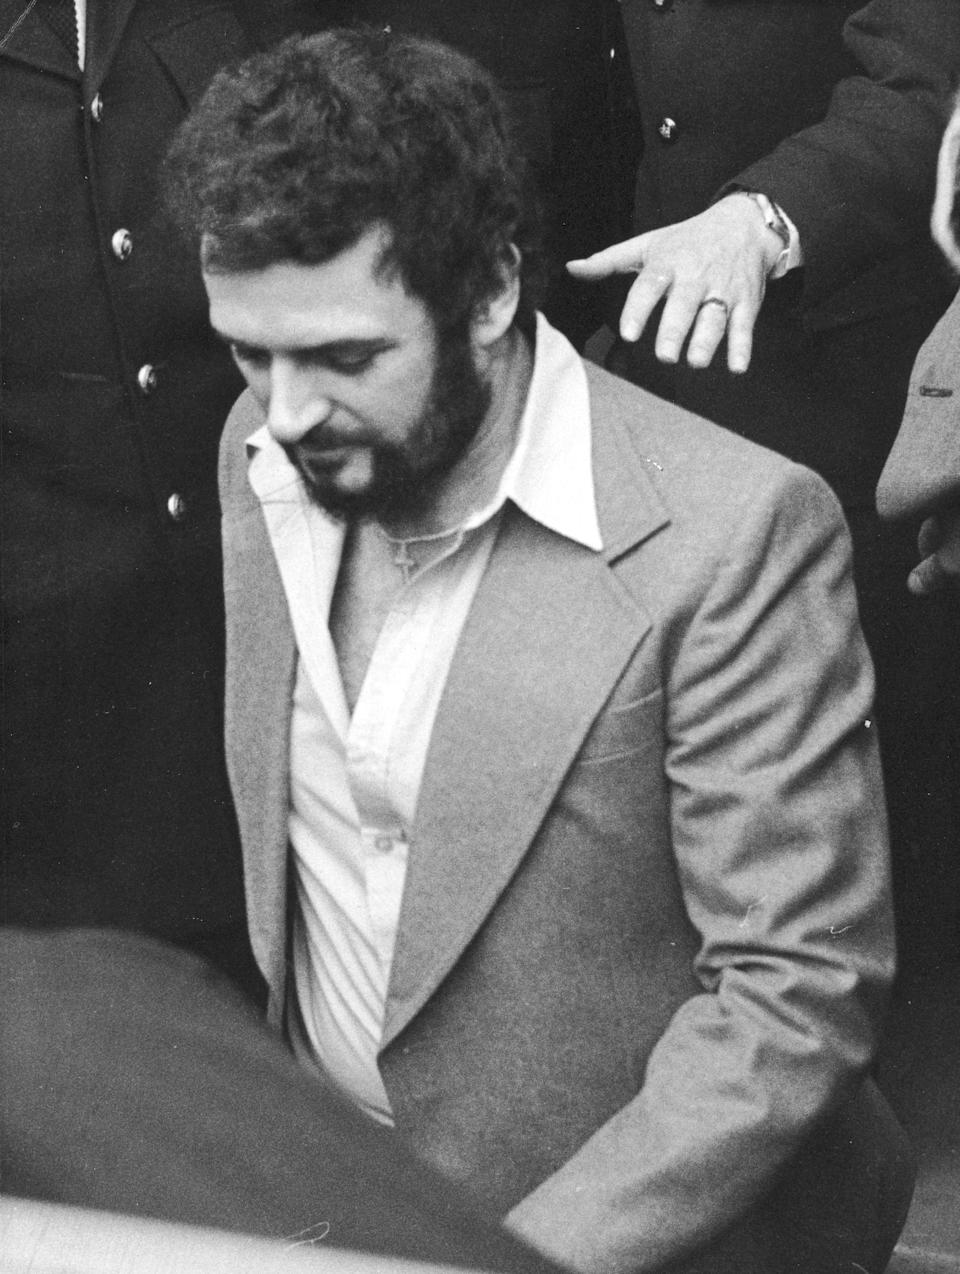 Sutcliffe, pictured in 1983, in police custody. (Express Newspapers/Getty Images)